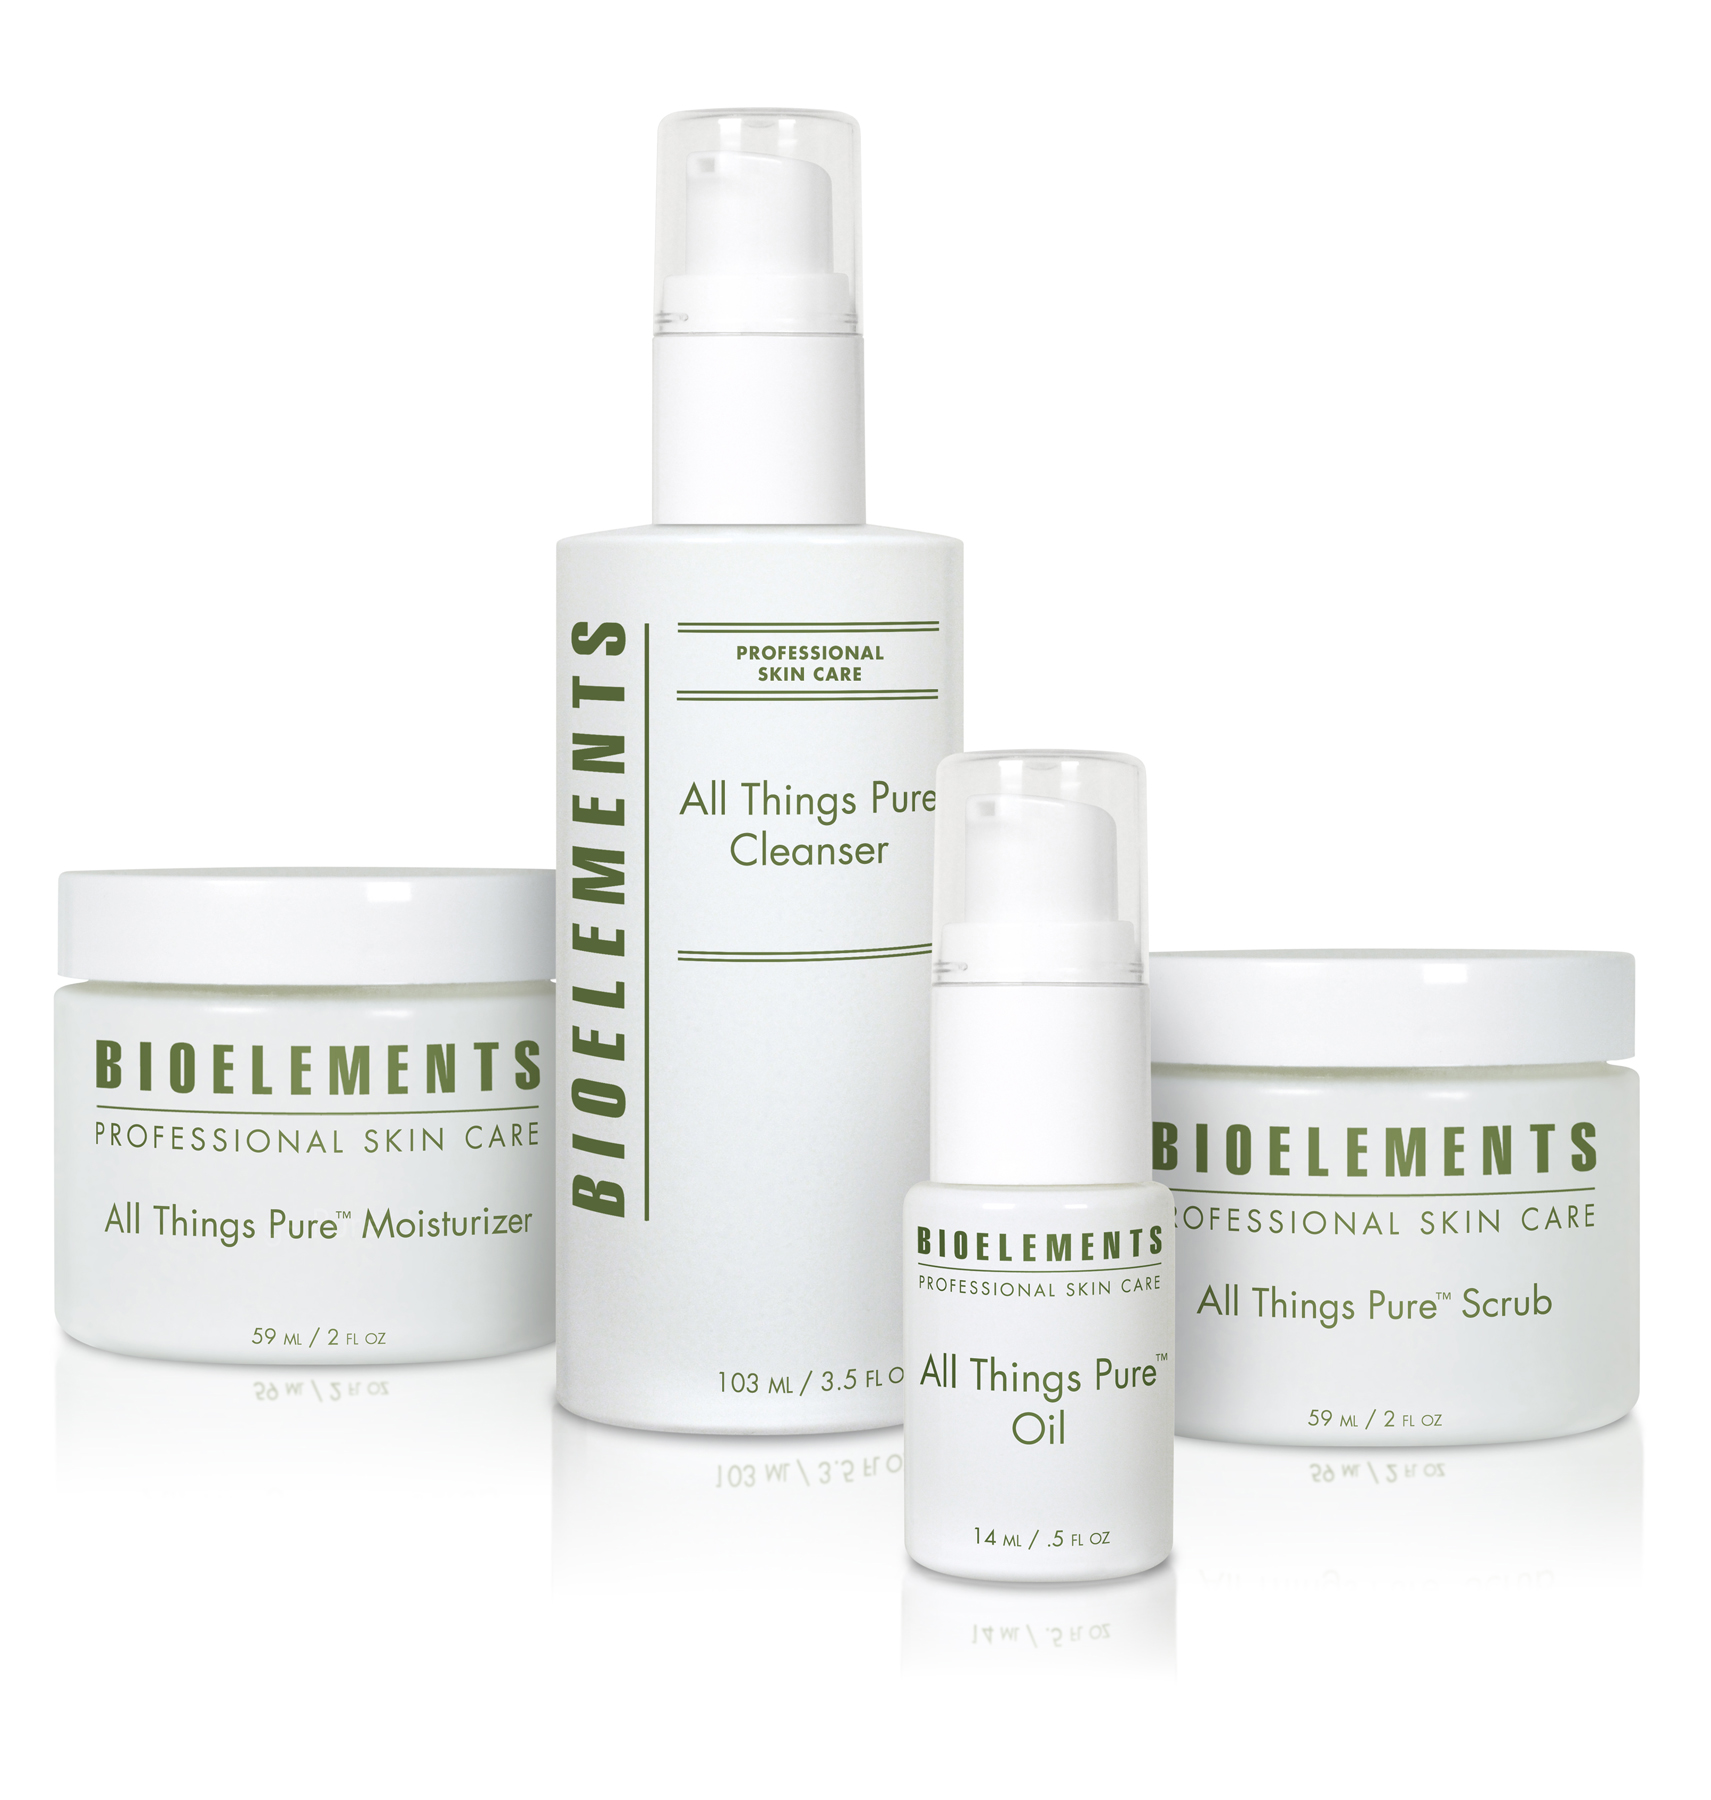 Bioelements Launches All Things Pure, MASSAGE Magazine